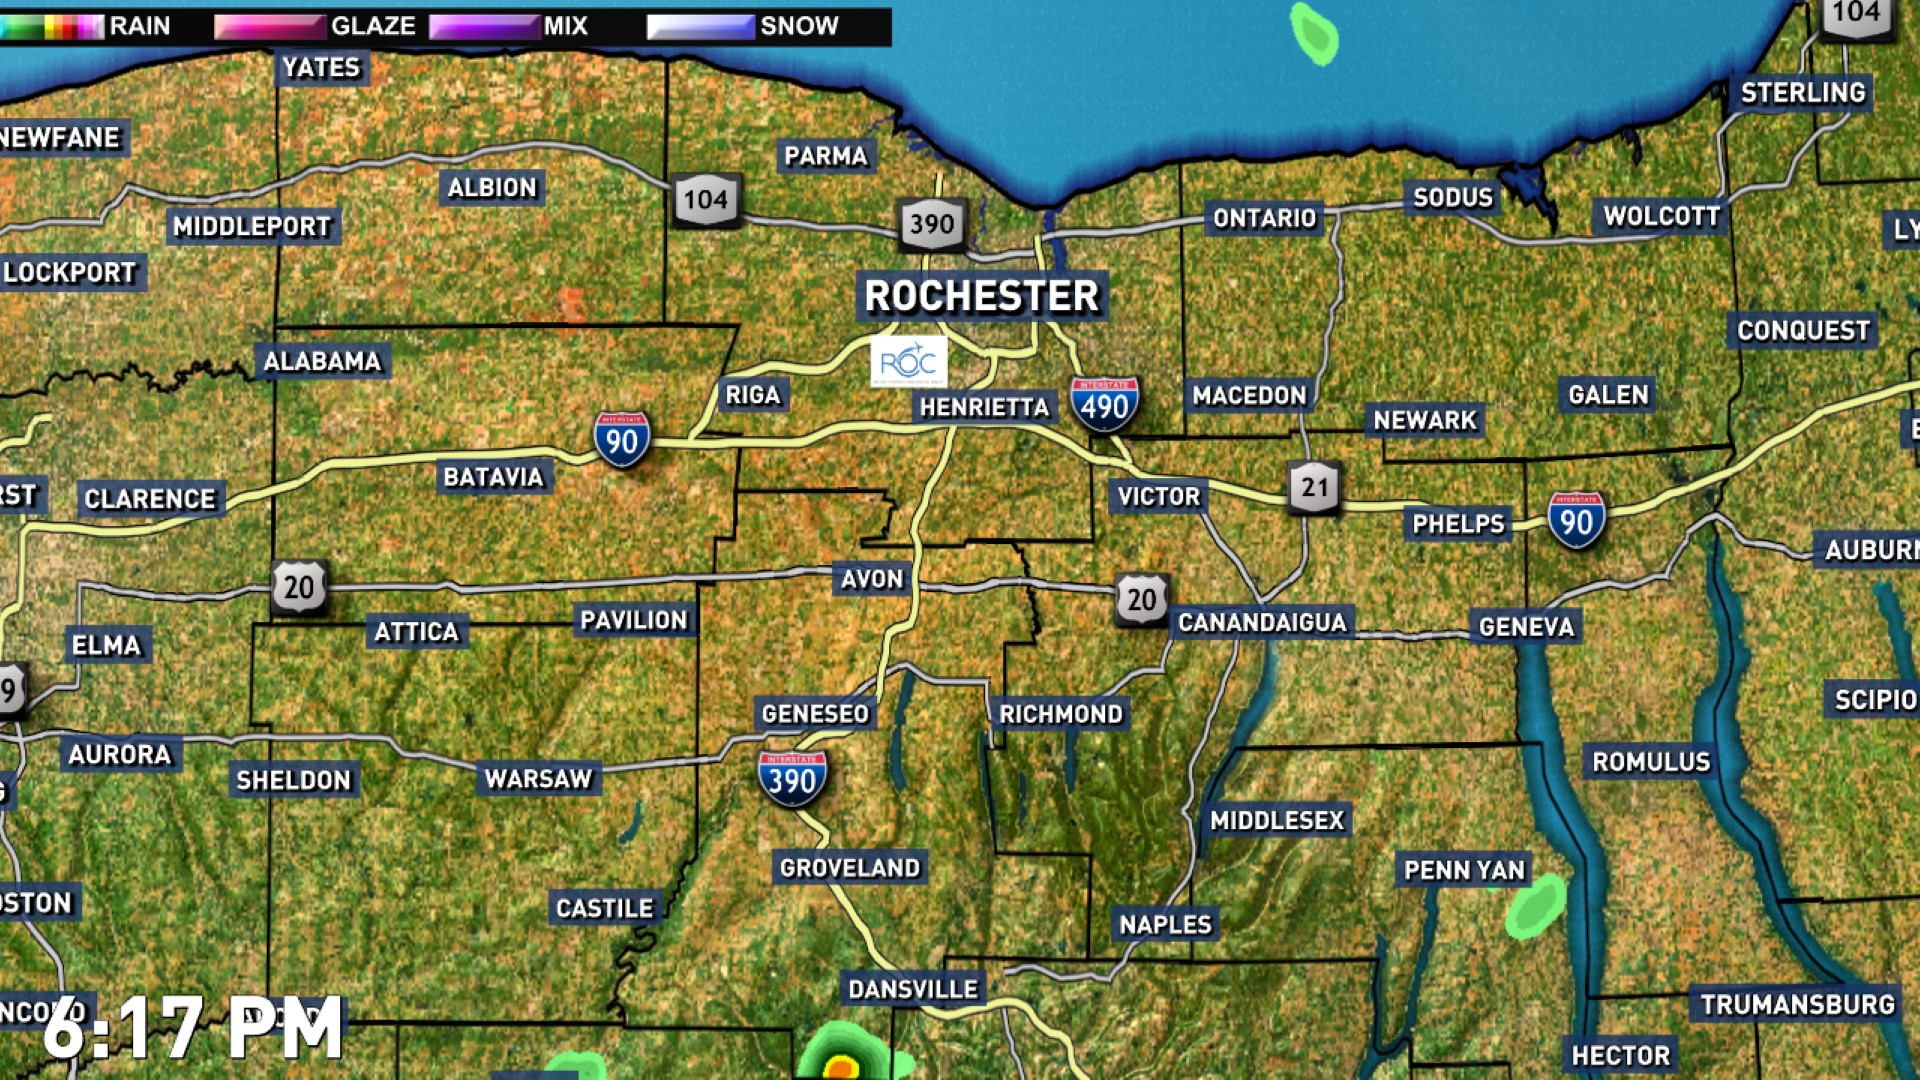 Tornado Symbol On Weather Map.Rochester Weather News Weather Sports Breaking News Wham